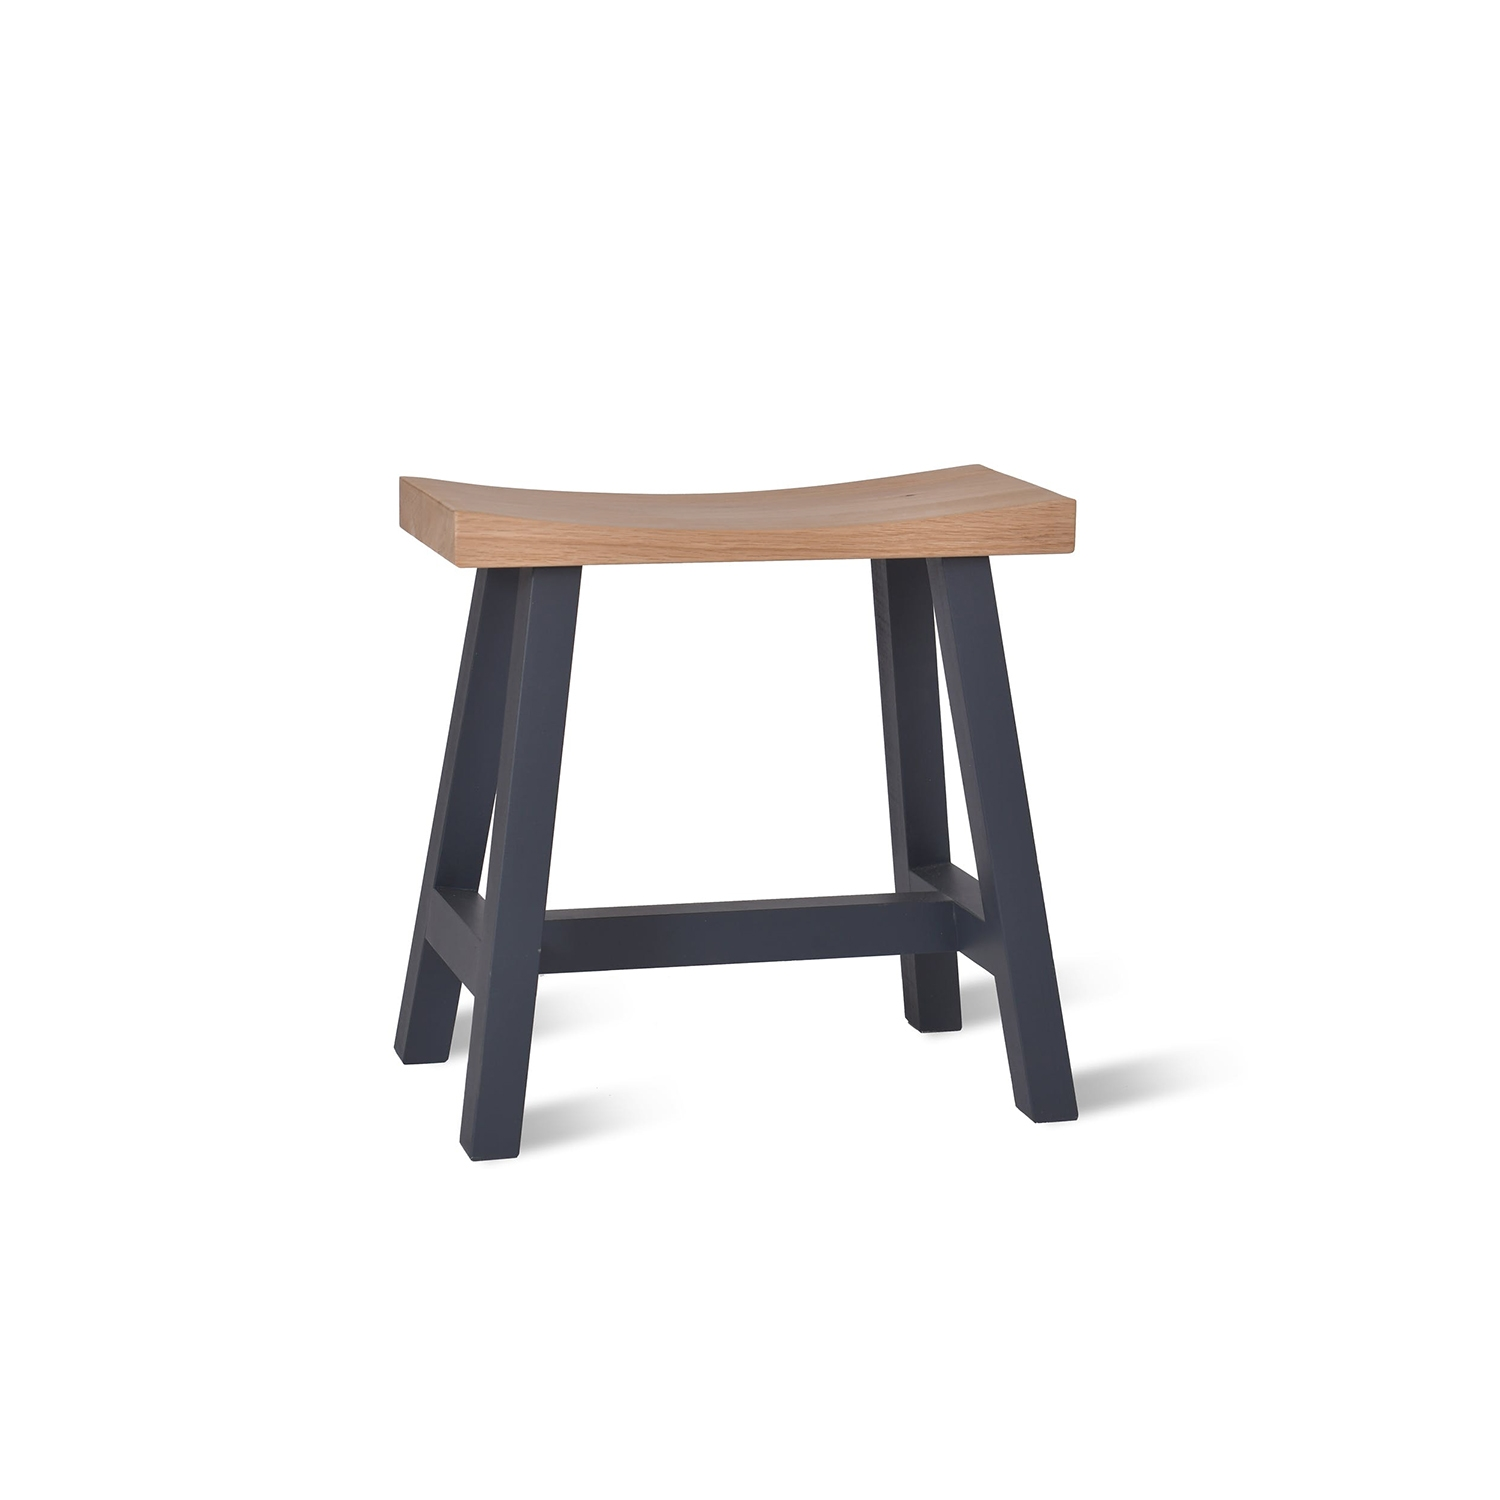 Image of Garden Trading Clockhouse Stool, Carbon